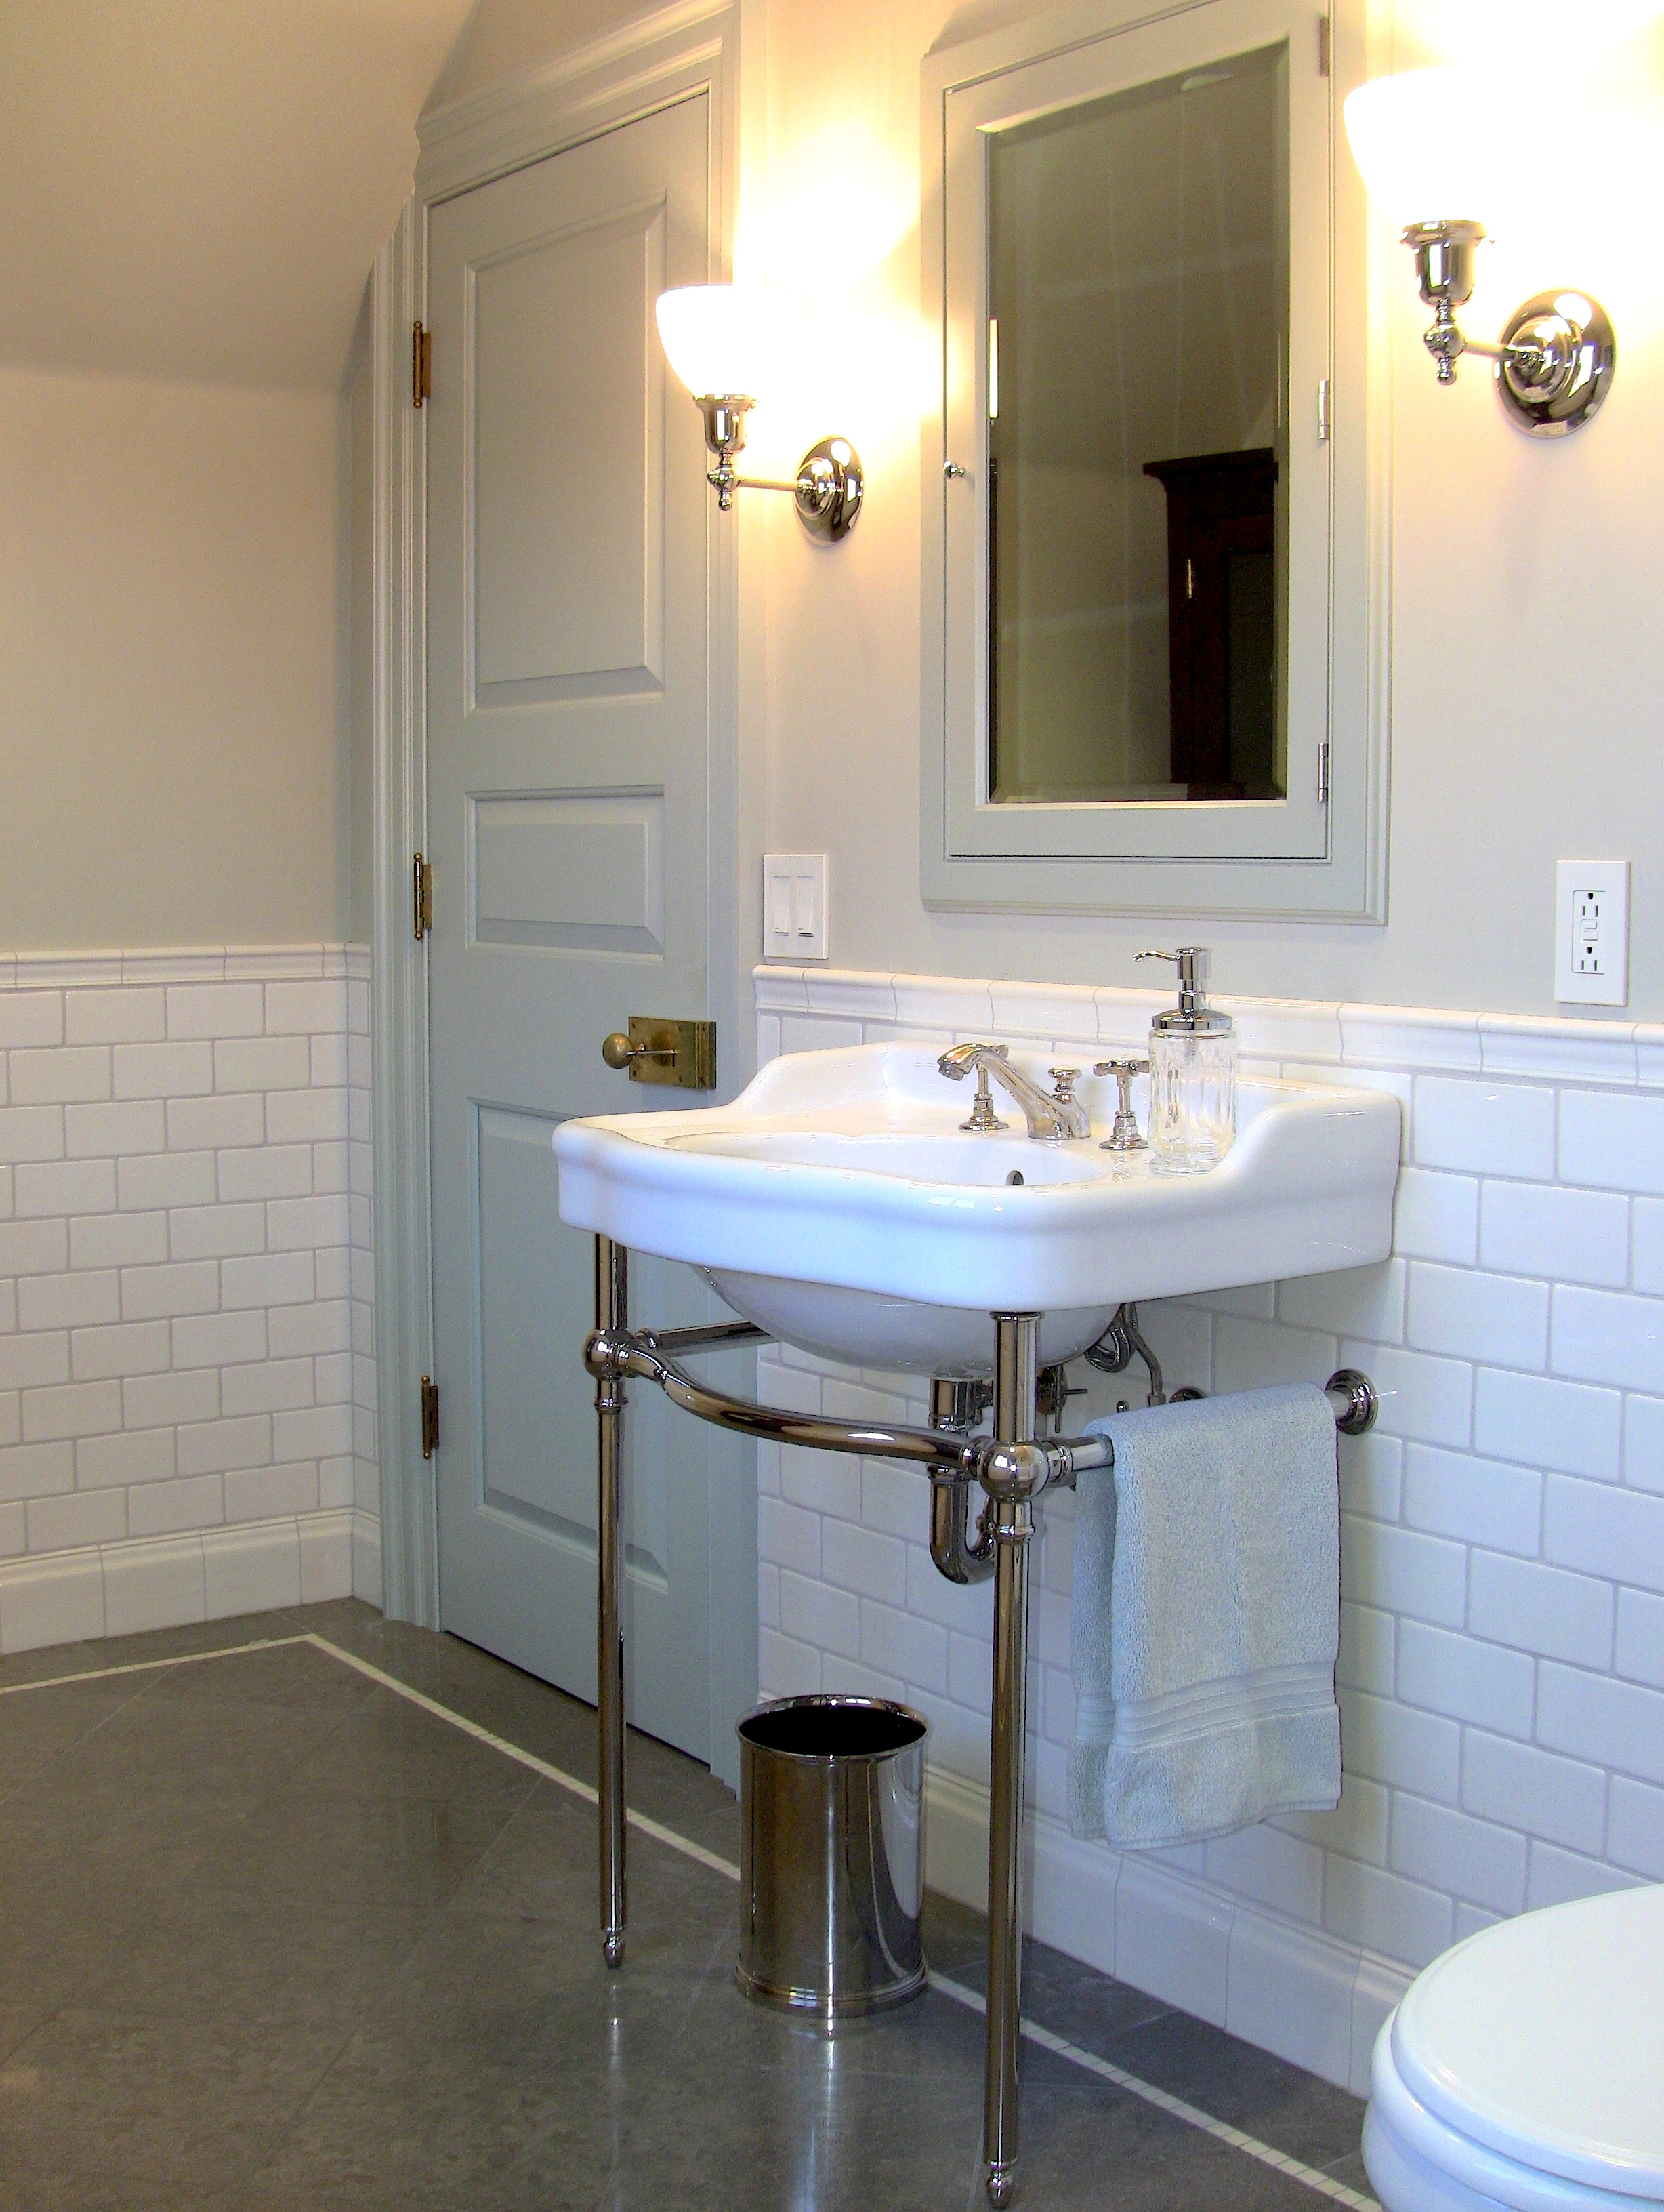 The bathroom for the Blue Bedroom above includes pedestal sink, handmade crackle-glazed tile wainscoting and honed Lagos Azul limestone flooring with a polished marble accent stripe .